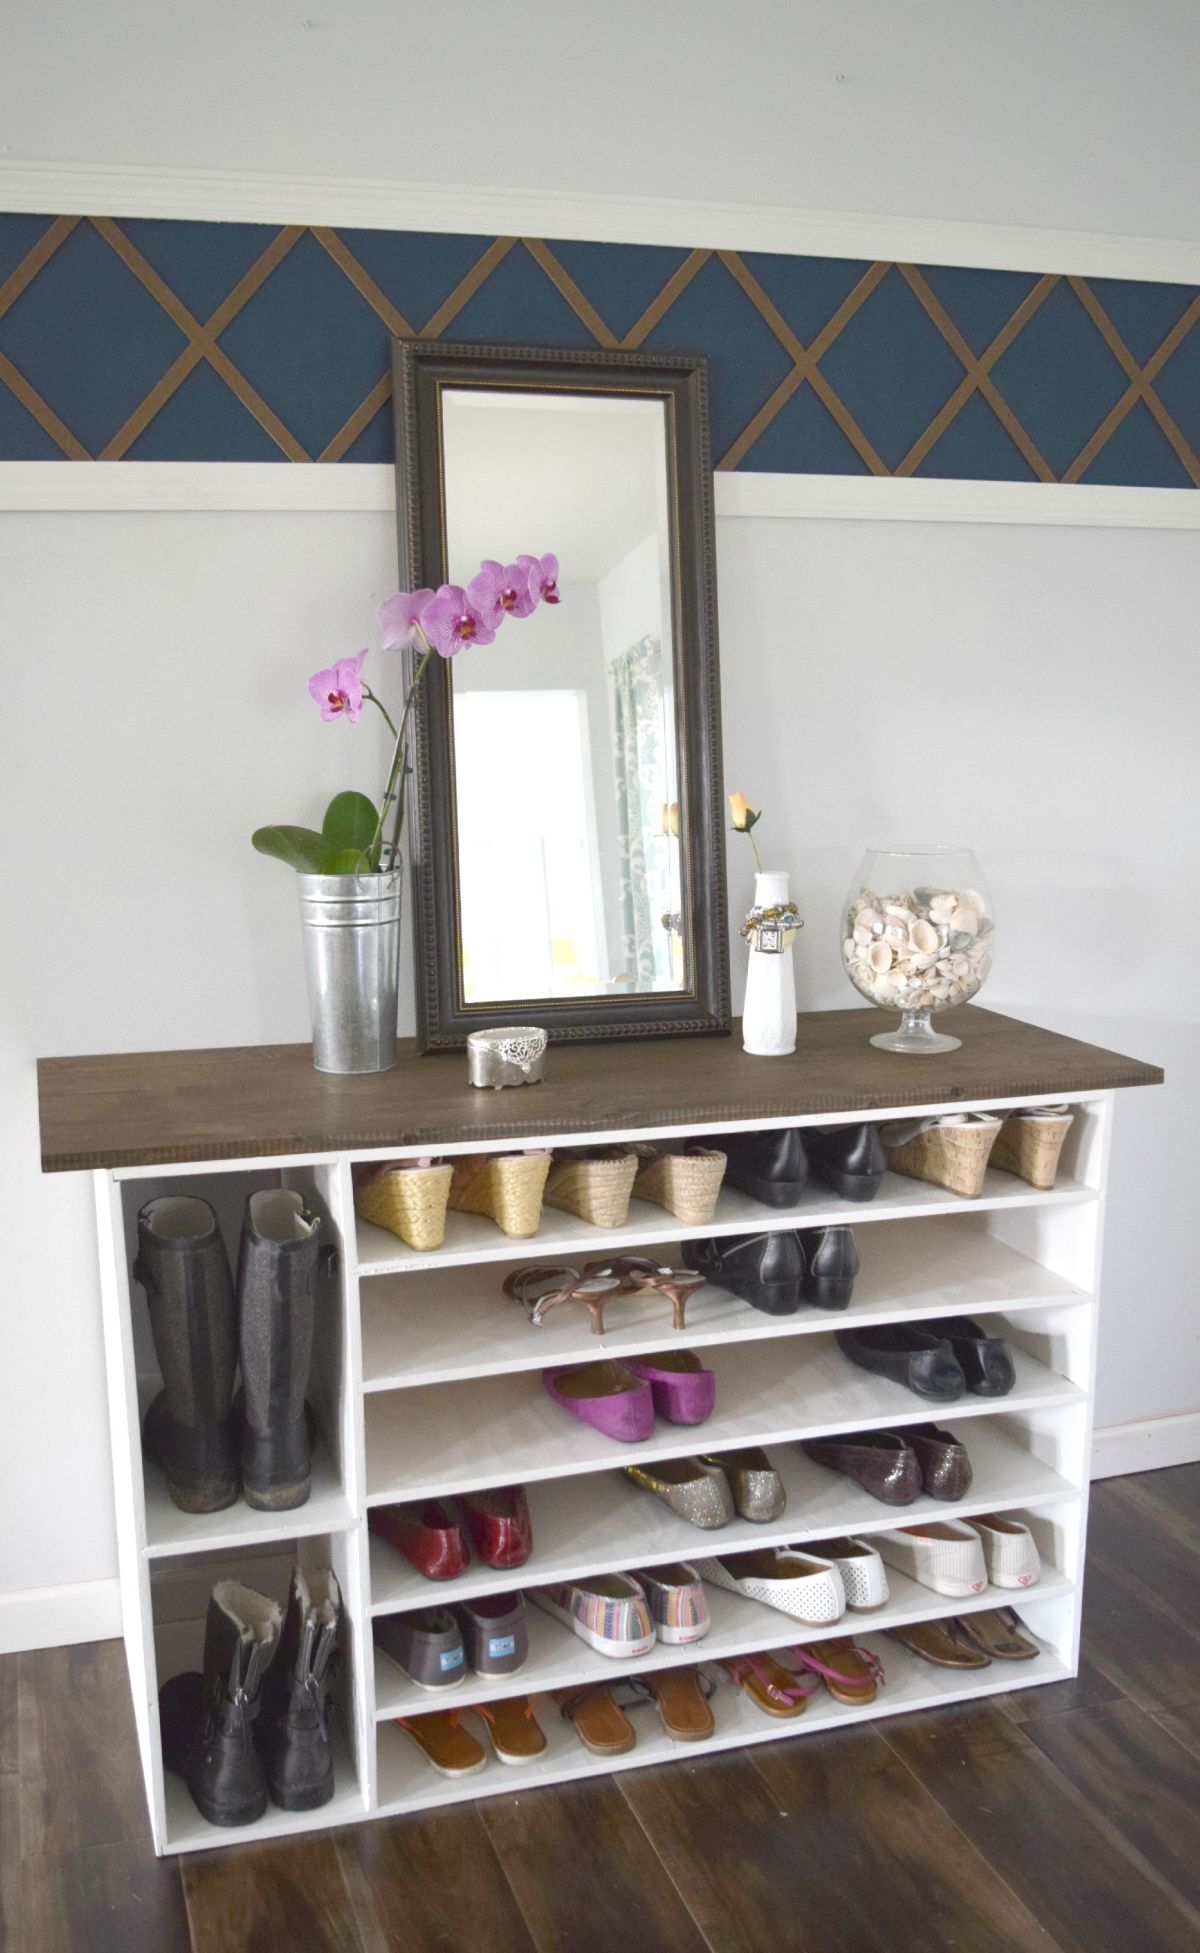 Stylish DIY Shoe Rack Perfect For Any Room - Shoe cabinets design ideas